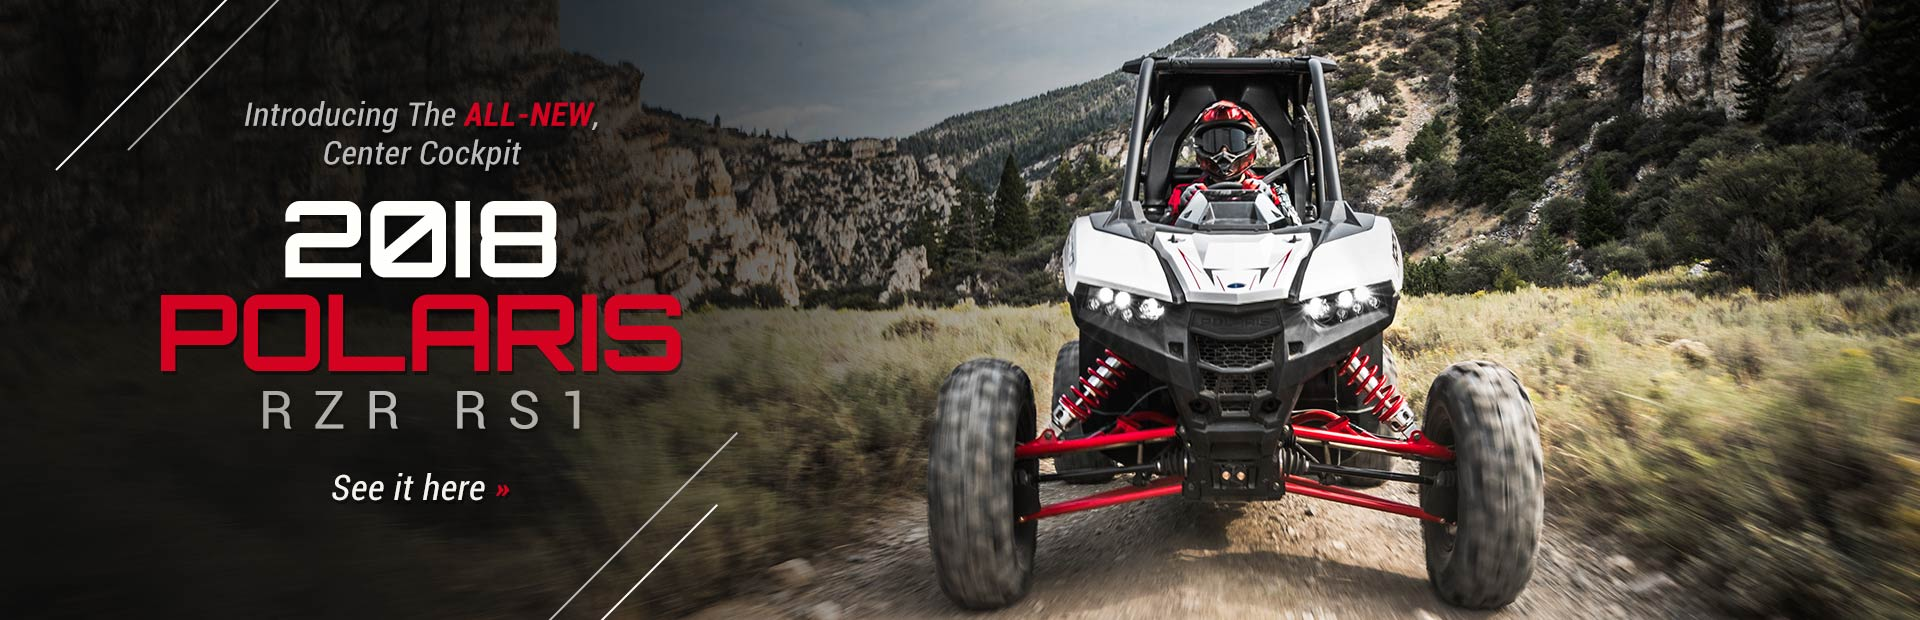 Masmotosports Provides Premium Motorsports Products And Services In Yamaha Rhino 450 Fuel Filter Introducing The All New Center Cockpit 2018 Polaris Rzr Rs1 Click Here To